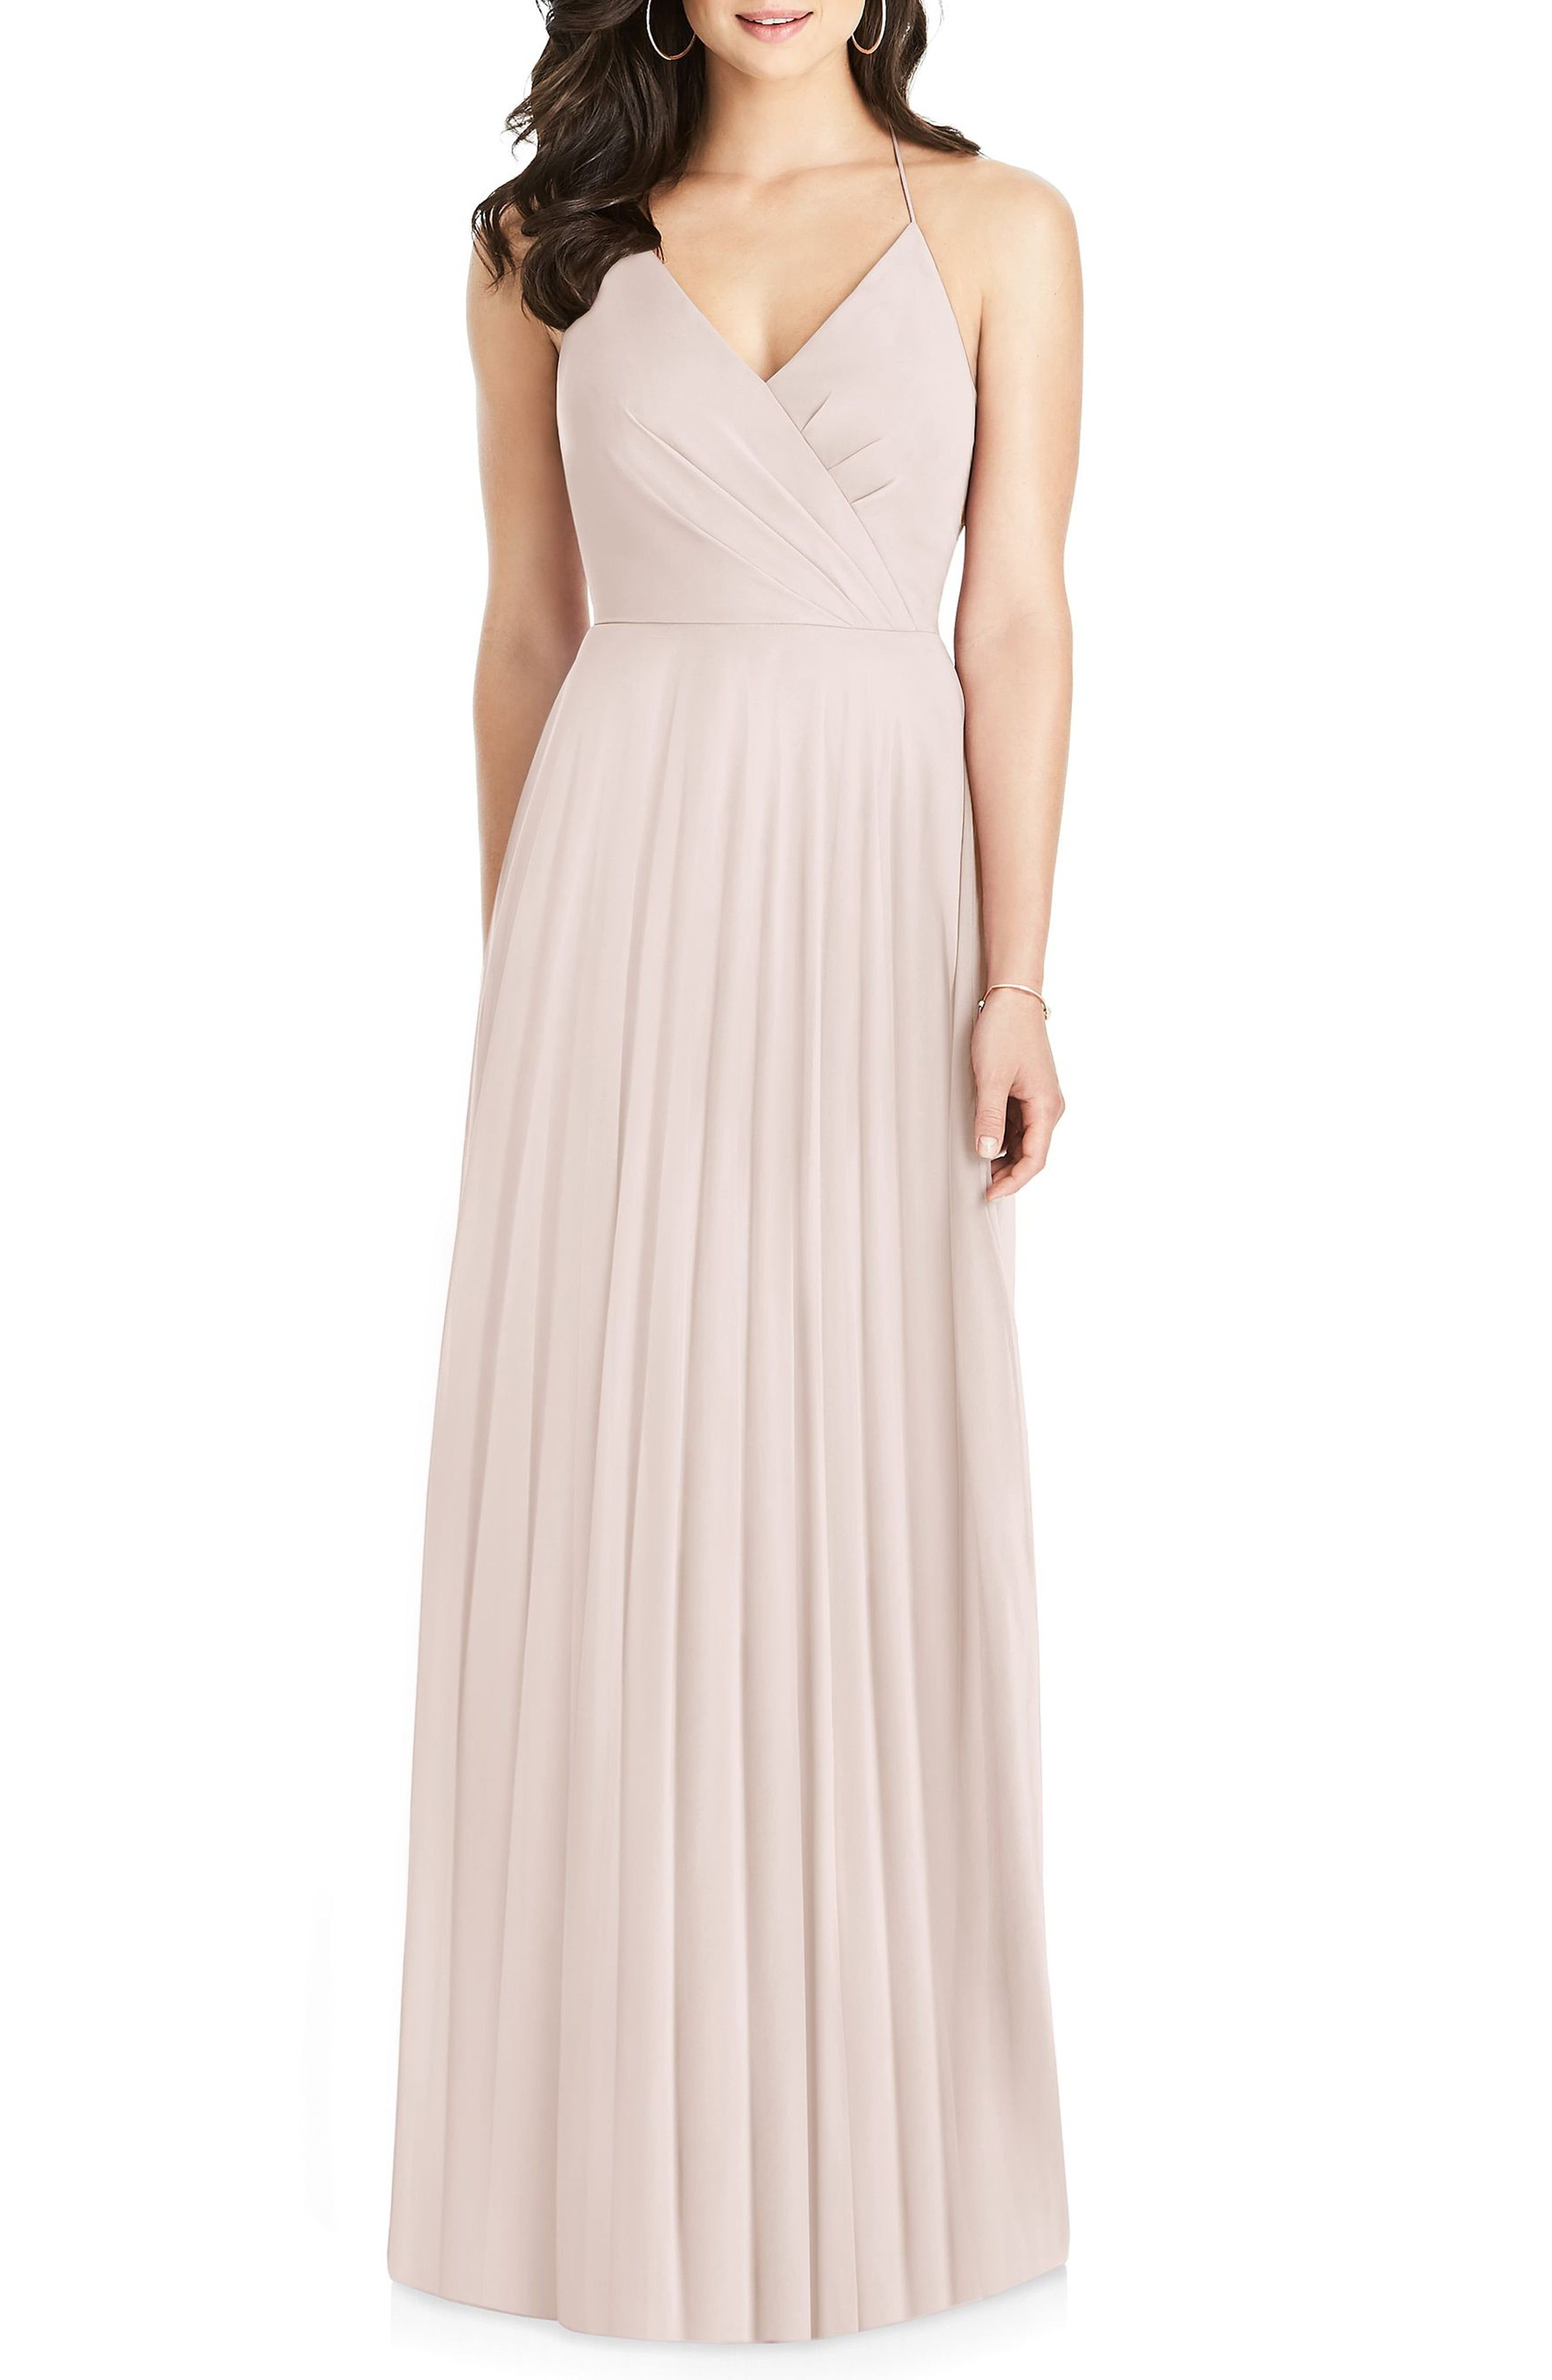 064cd20fc8 Women s Dessy Collection Ruffle Back Chiffon Gown